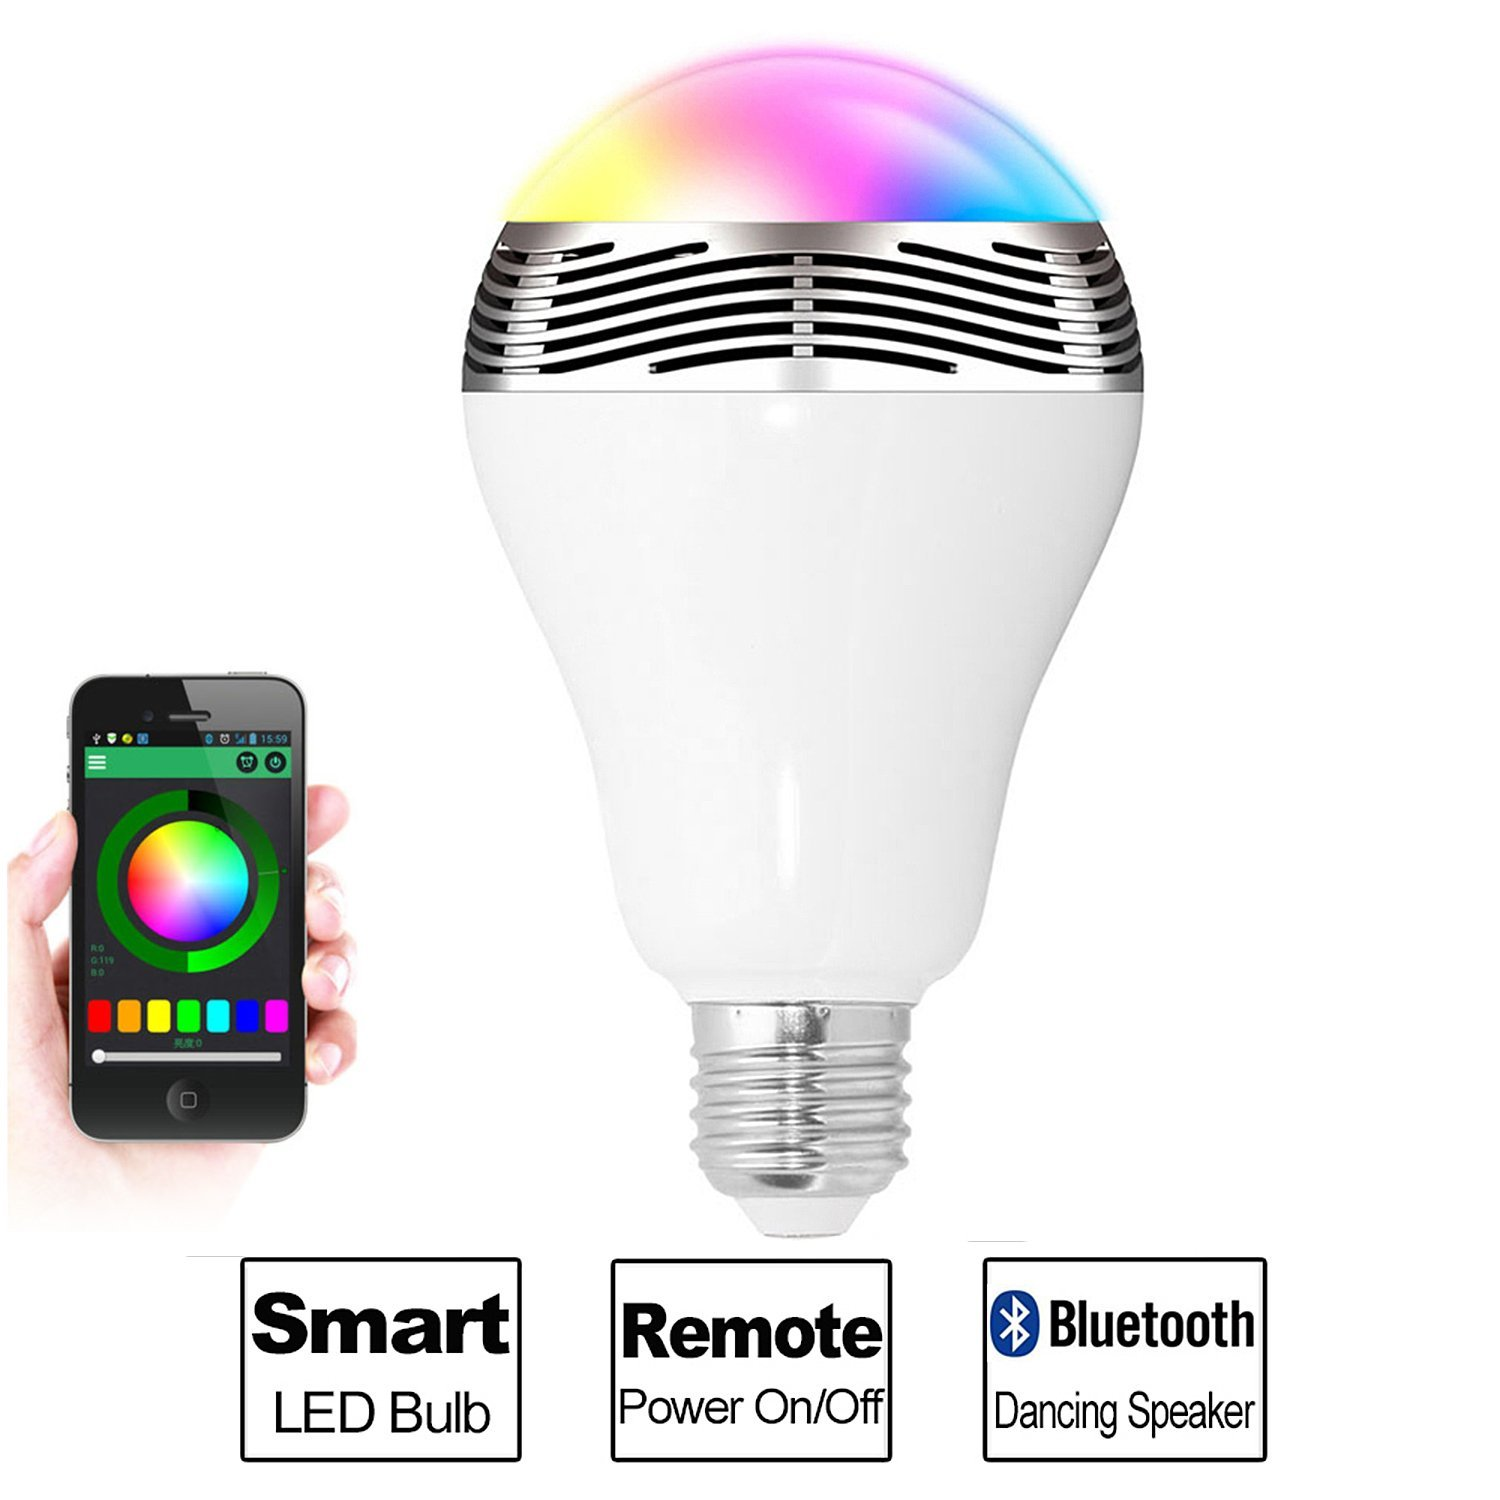 MiLight 6W+3W Speaker E27 Bluetooth 4.0 Smart LED Λάμπα για Android & iOS